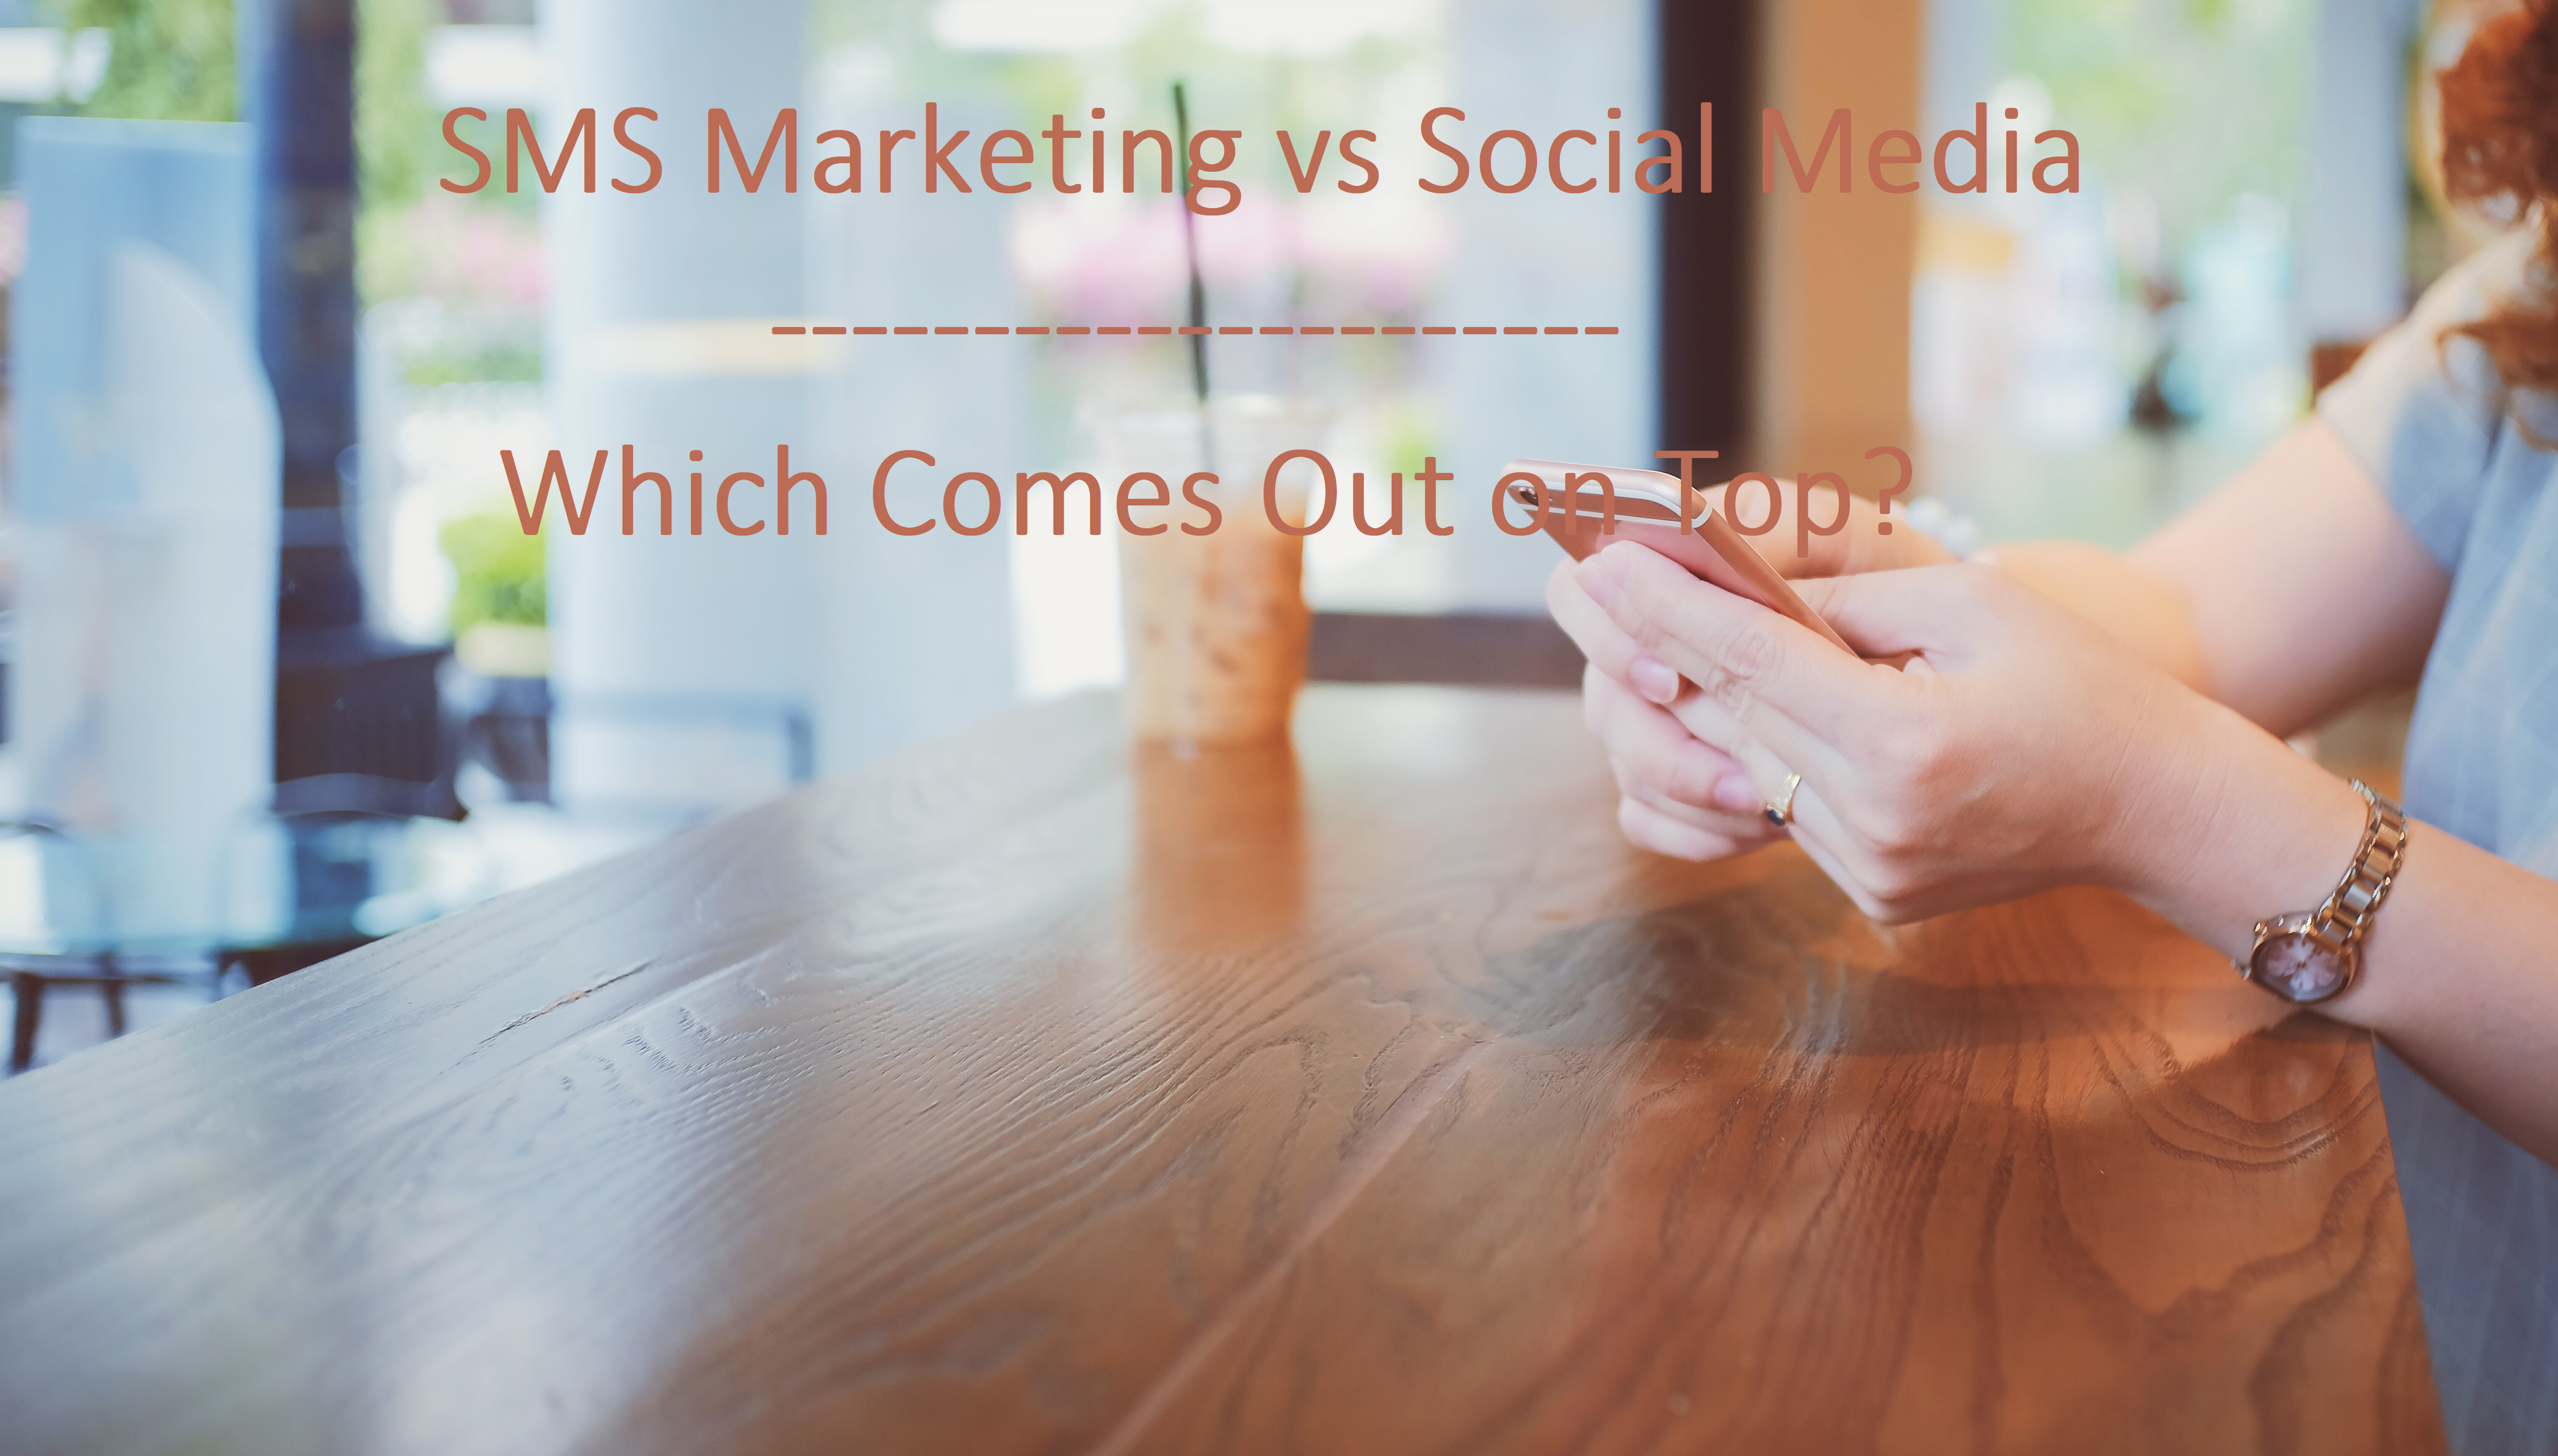 sms-marketing-vs-social-media-1